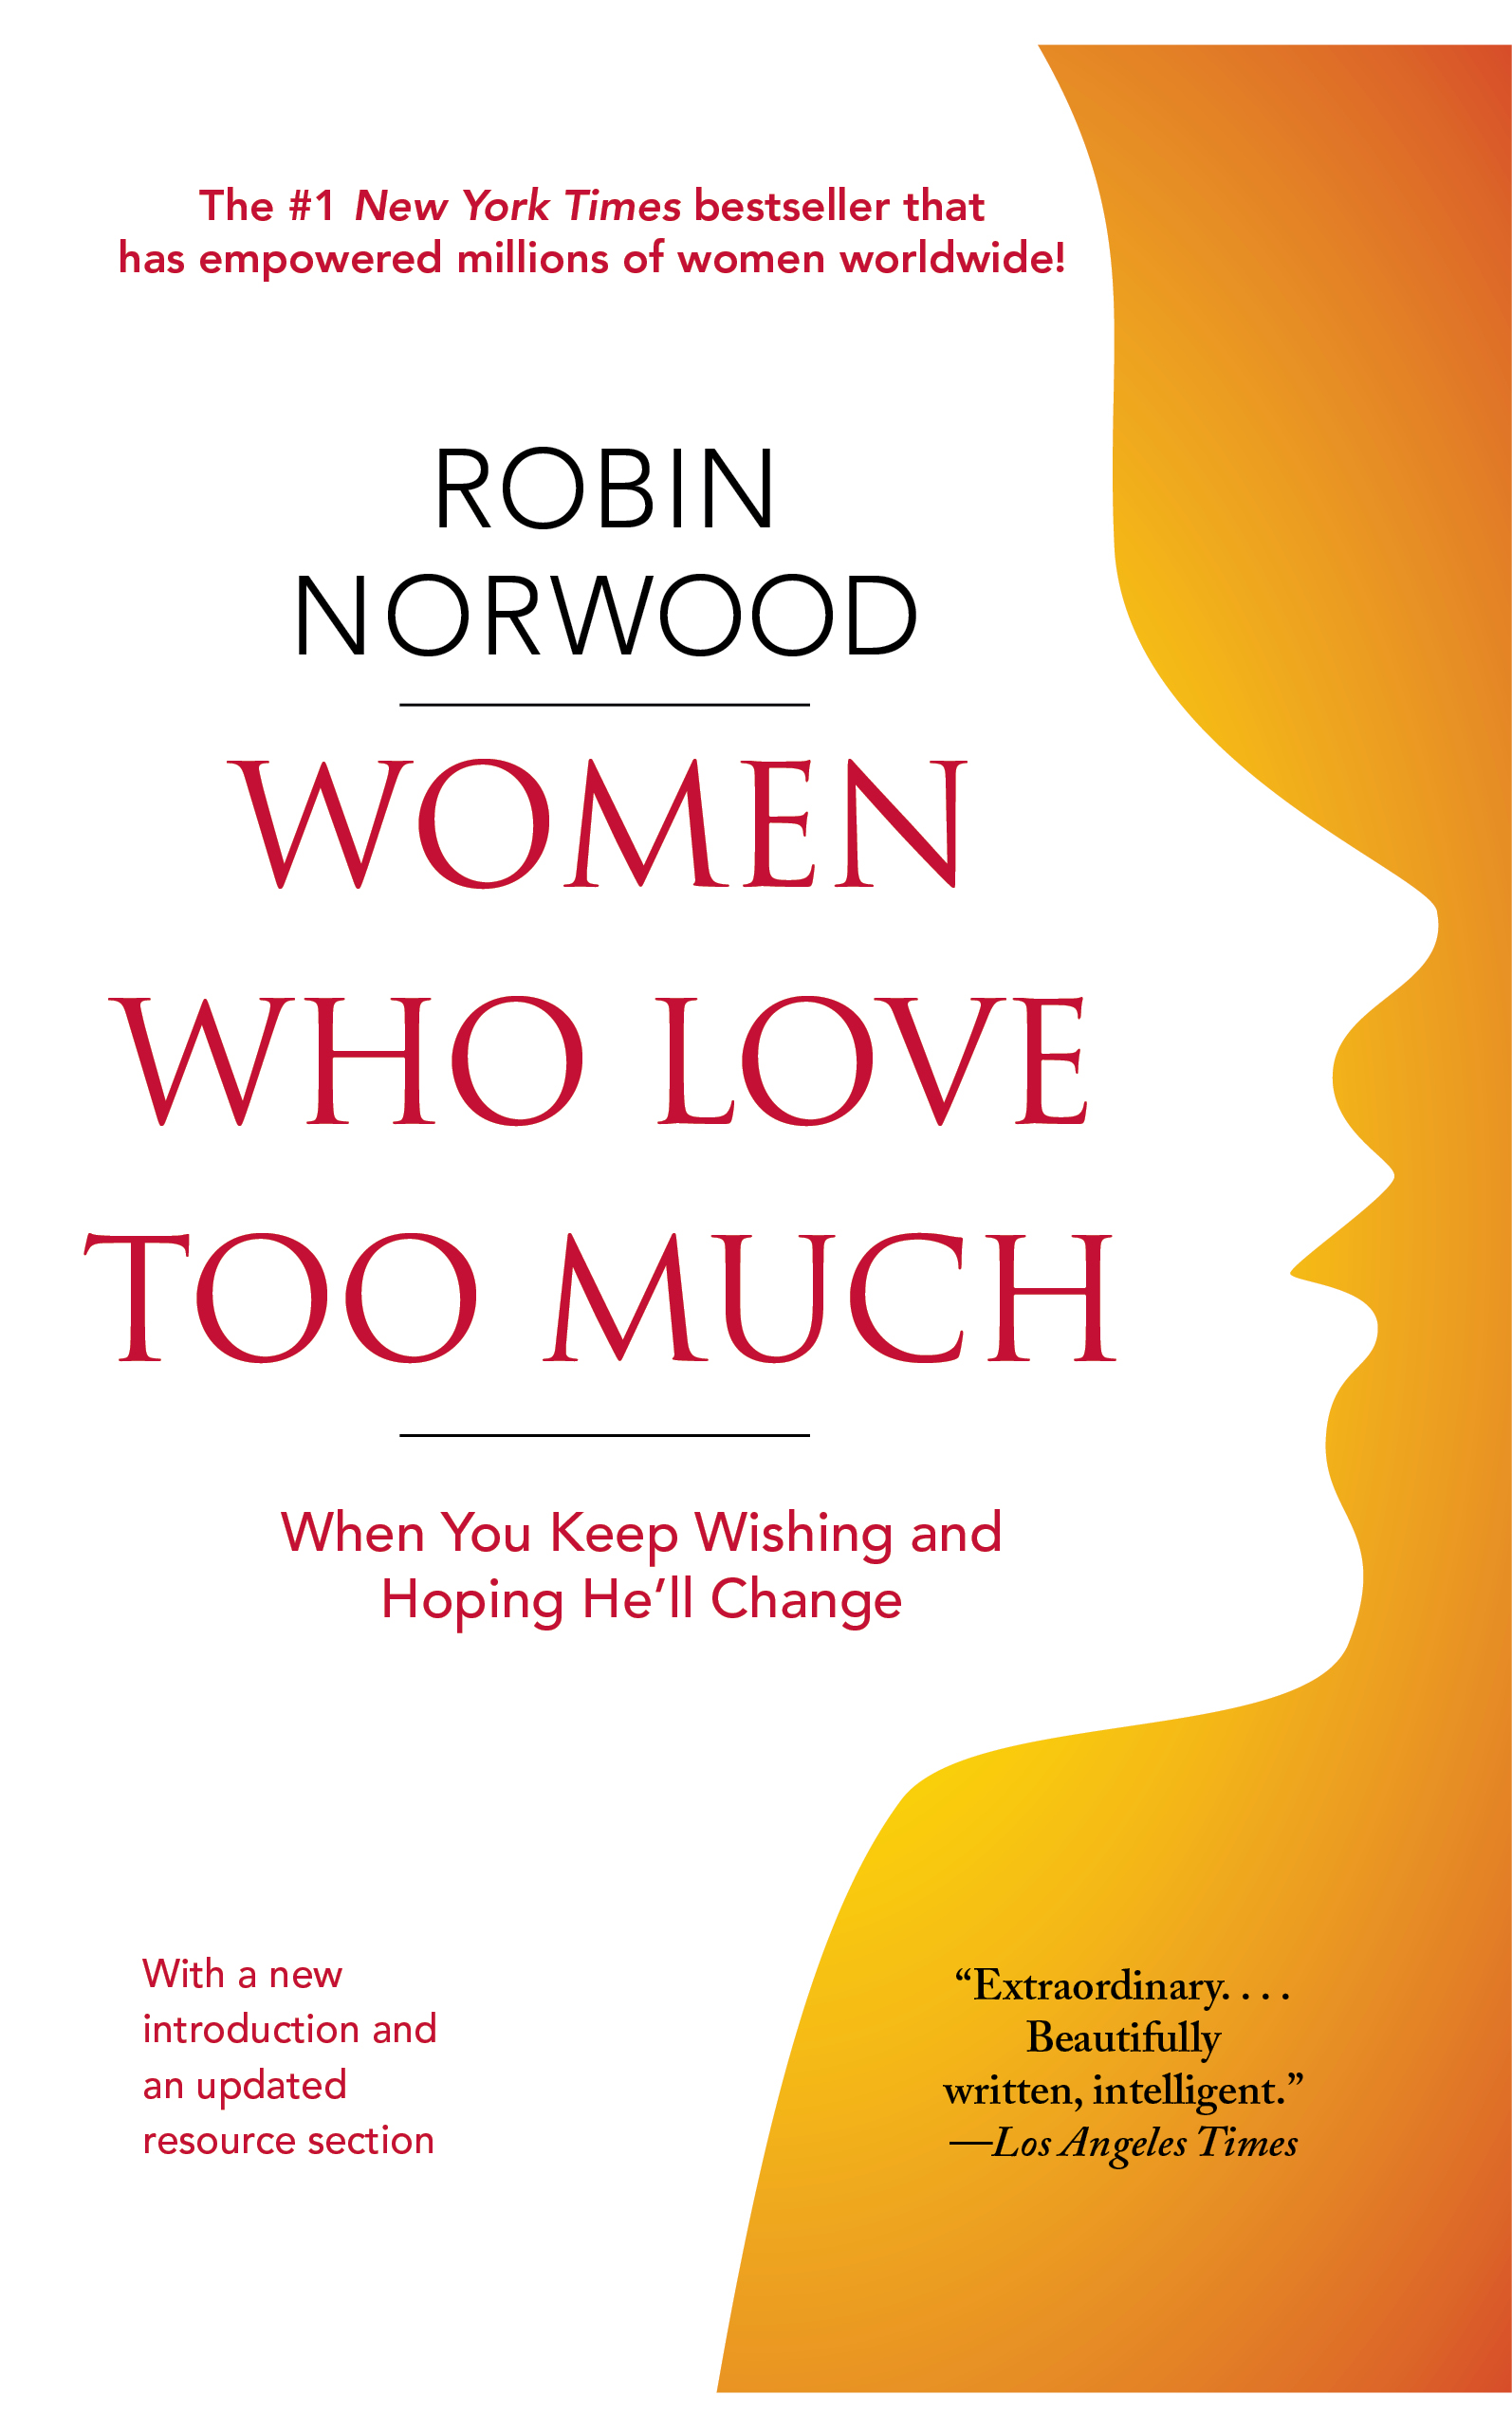 Robin Norwood: biography and authors books